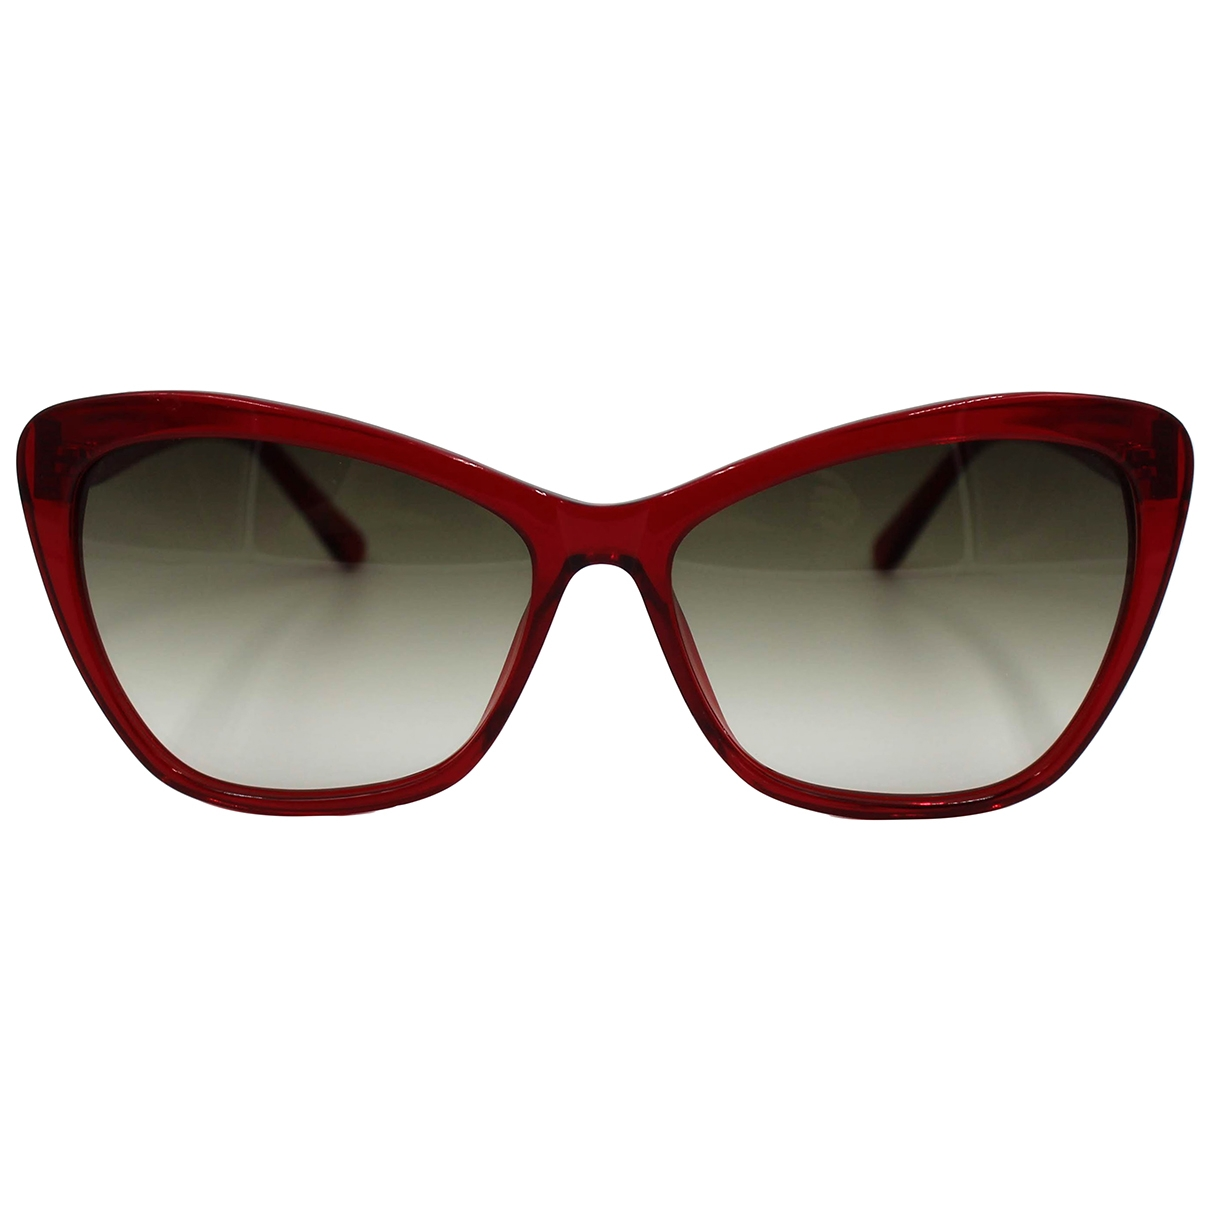 Romeo Gigli - Lunettes   pour femme - rouge